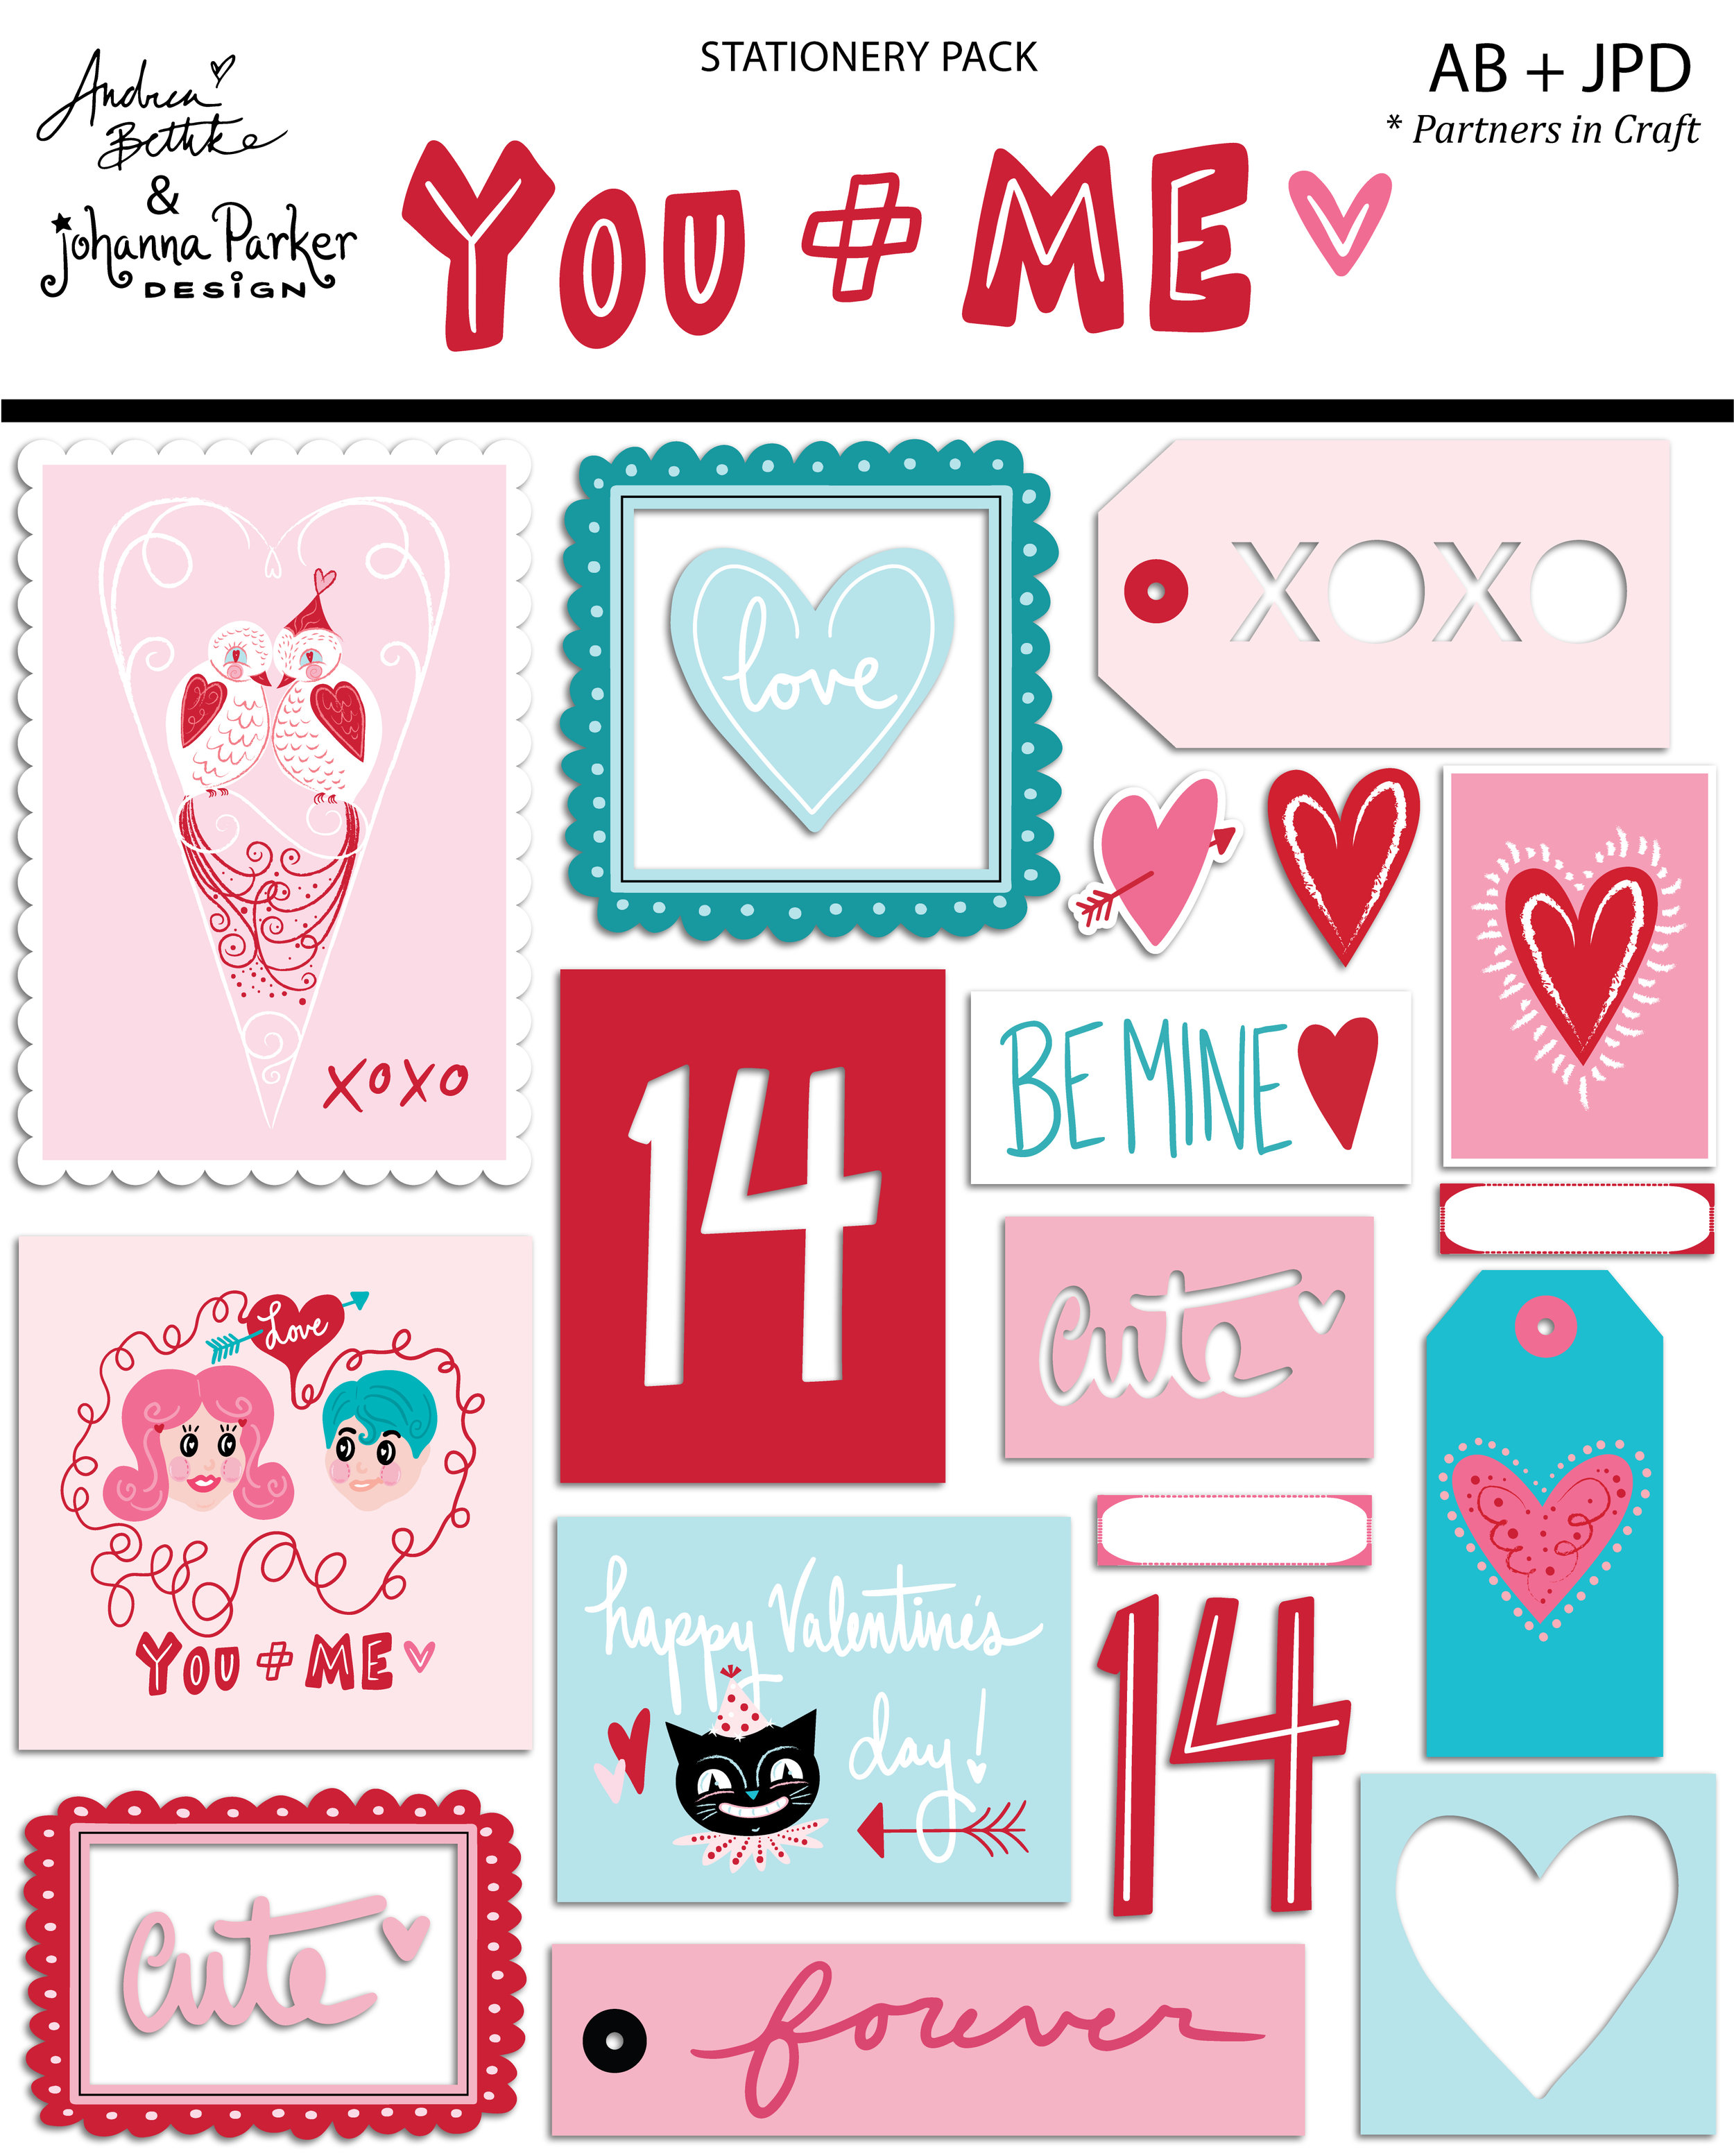 You + Me - Stationery with packaging.jpg